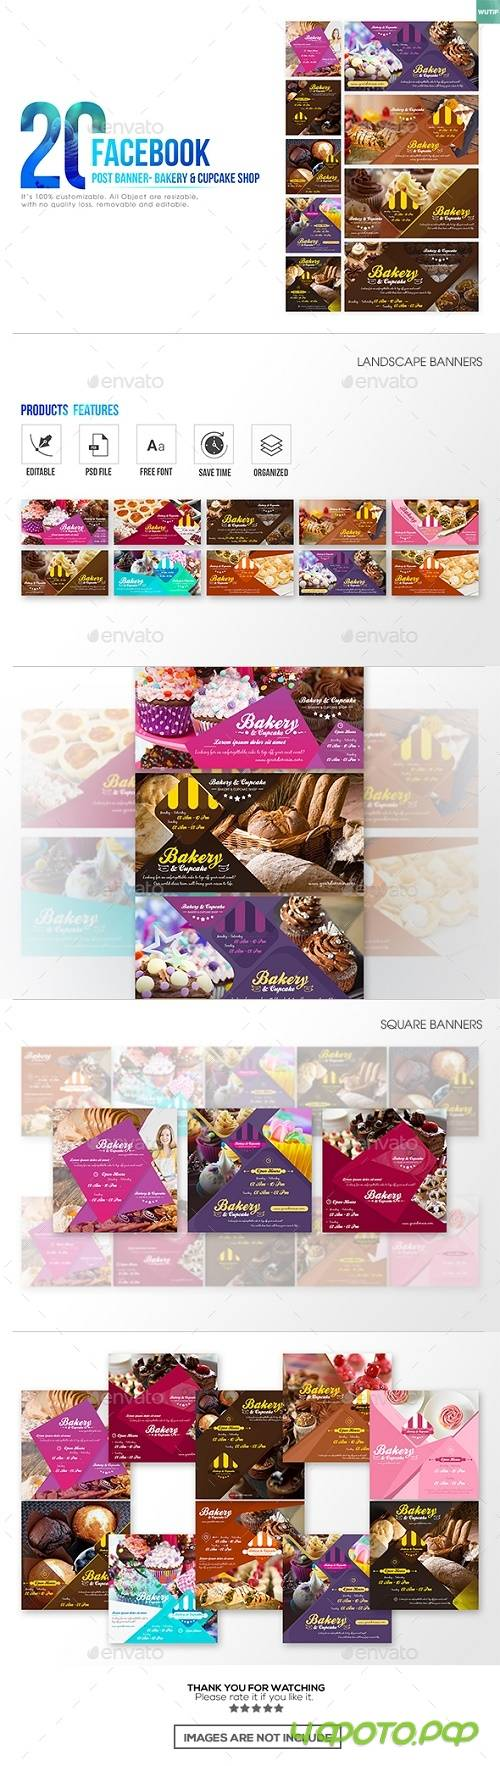 20 Facebook Post Banner - Bakery and Cupcake Shop - 19284528